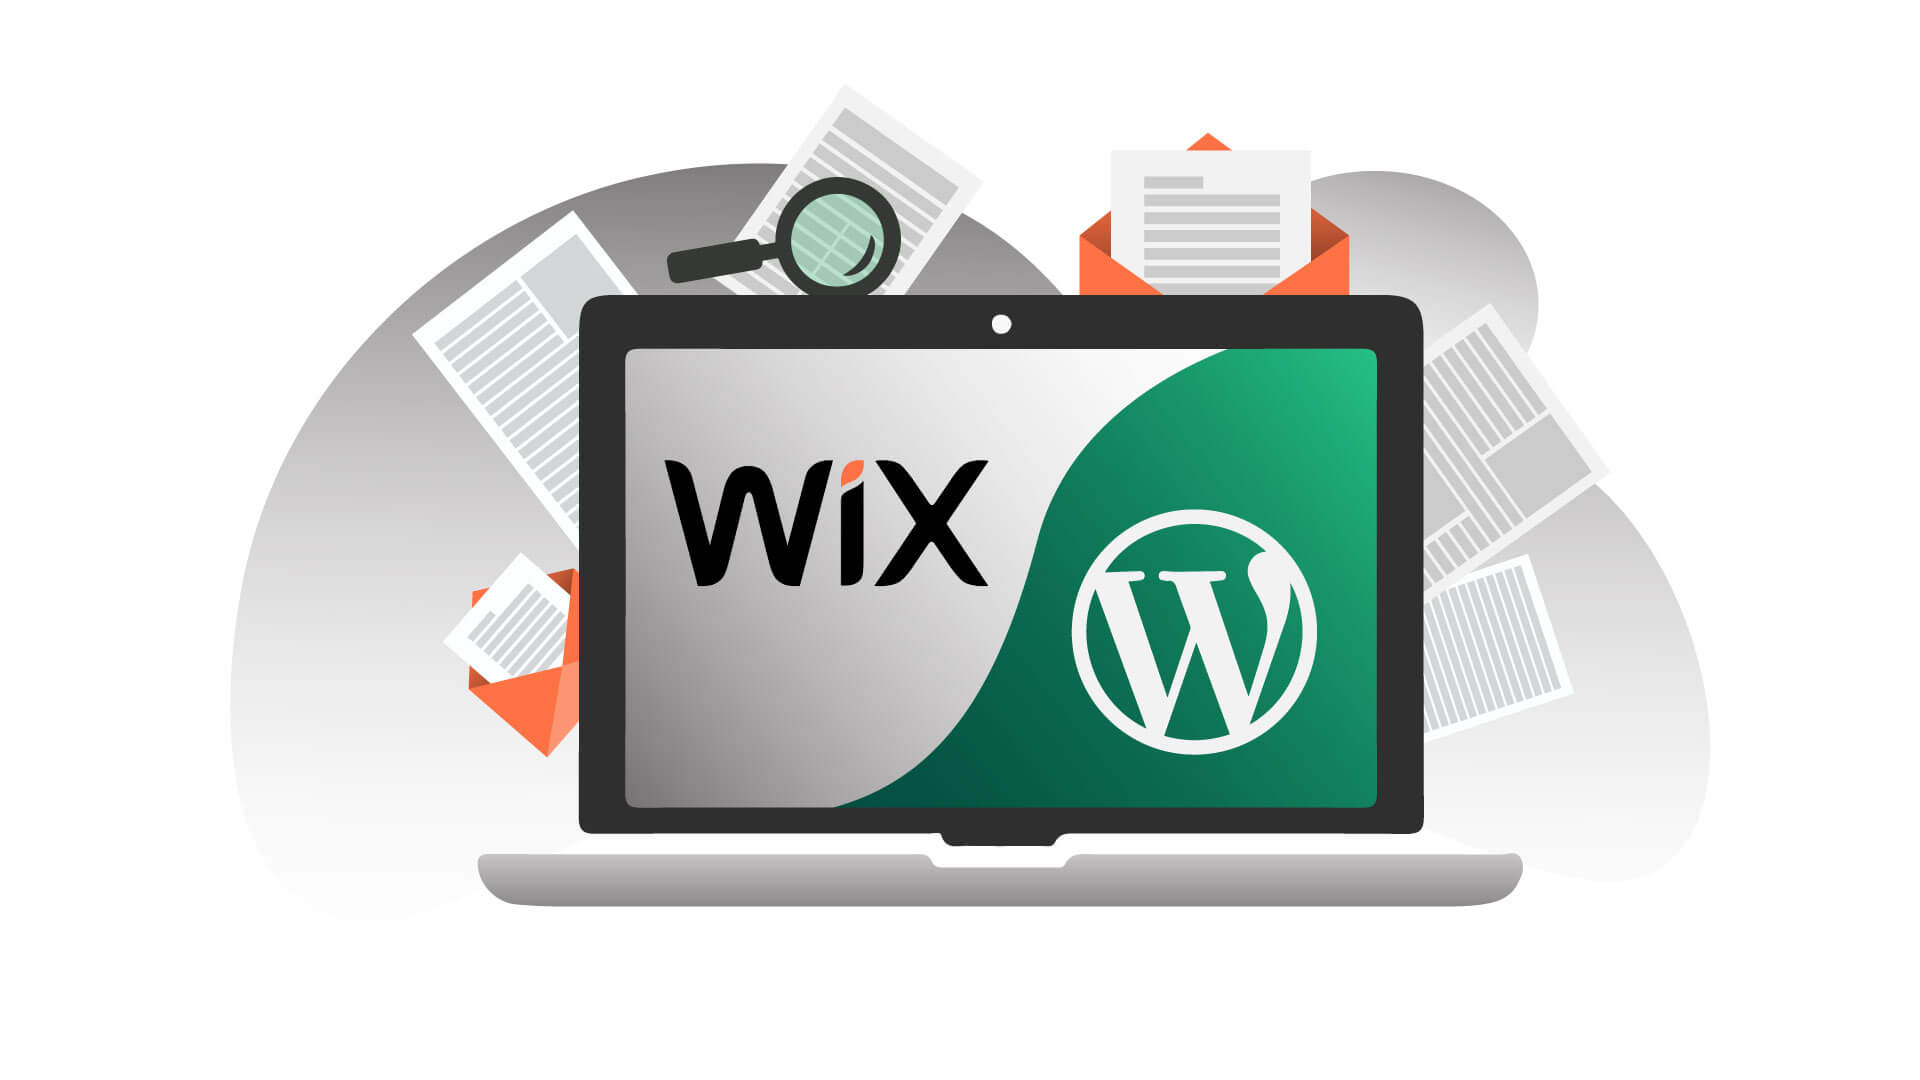 Wix vs WordPress for SEO, which one is better?